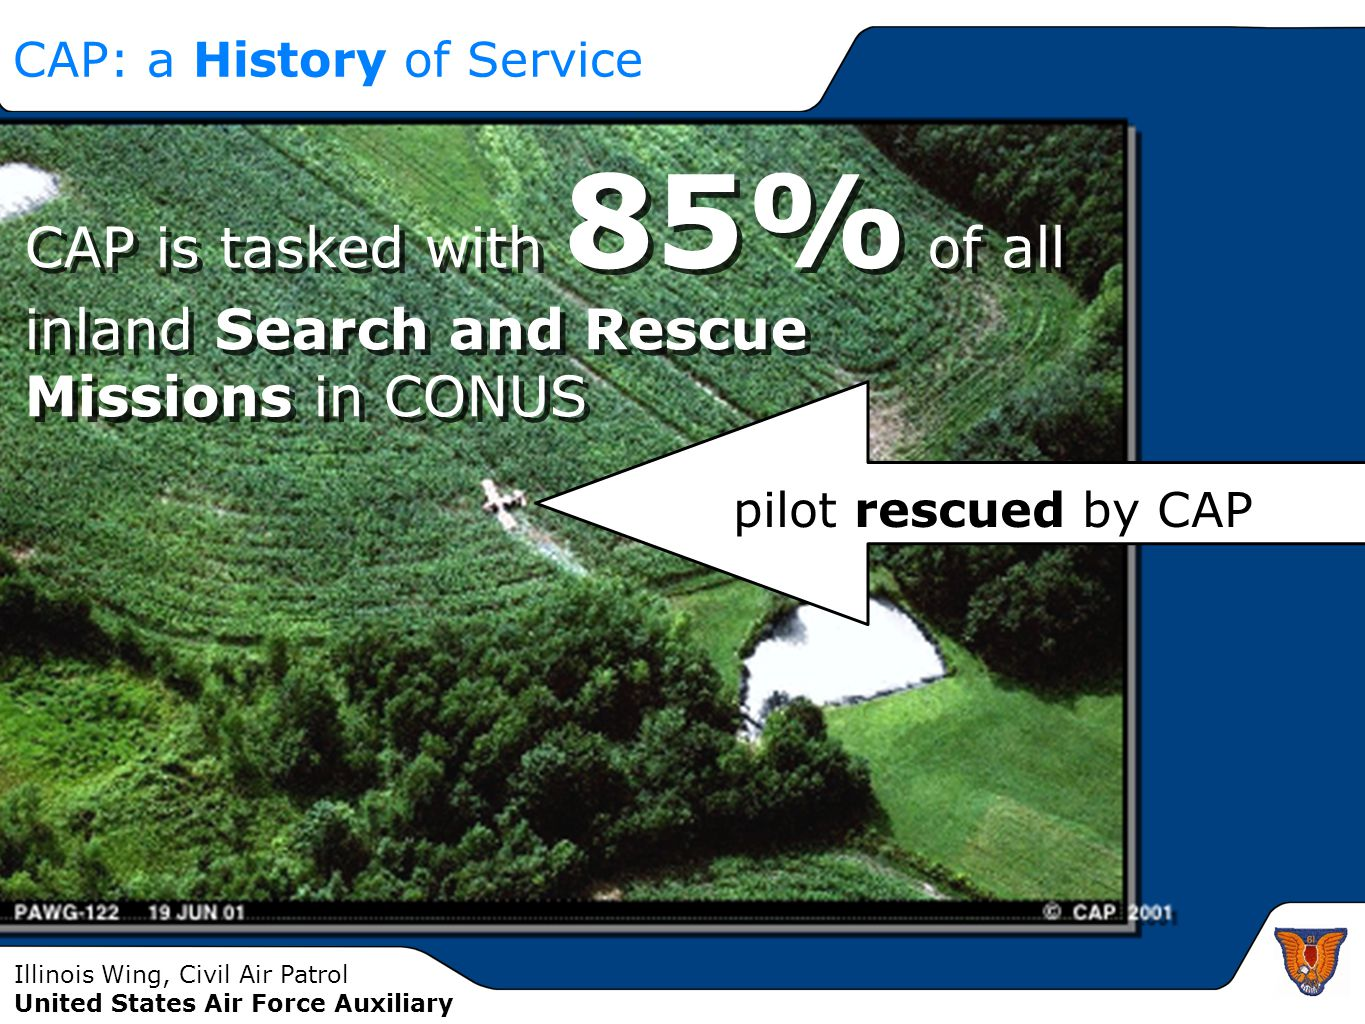 Illinois Wing, Civil Air Patrol United States Air Force Auxiliary CAP: a History of Service CAP is tasked with 85% of all inland Search and Rescue Missions in CONUS pilot rescued by CAP